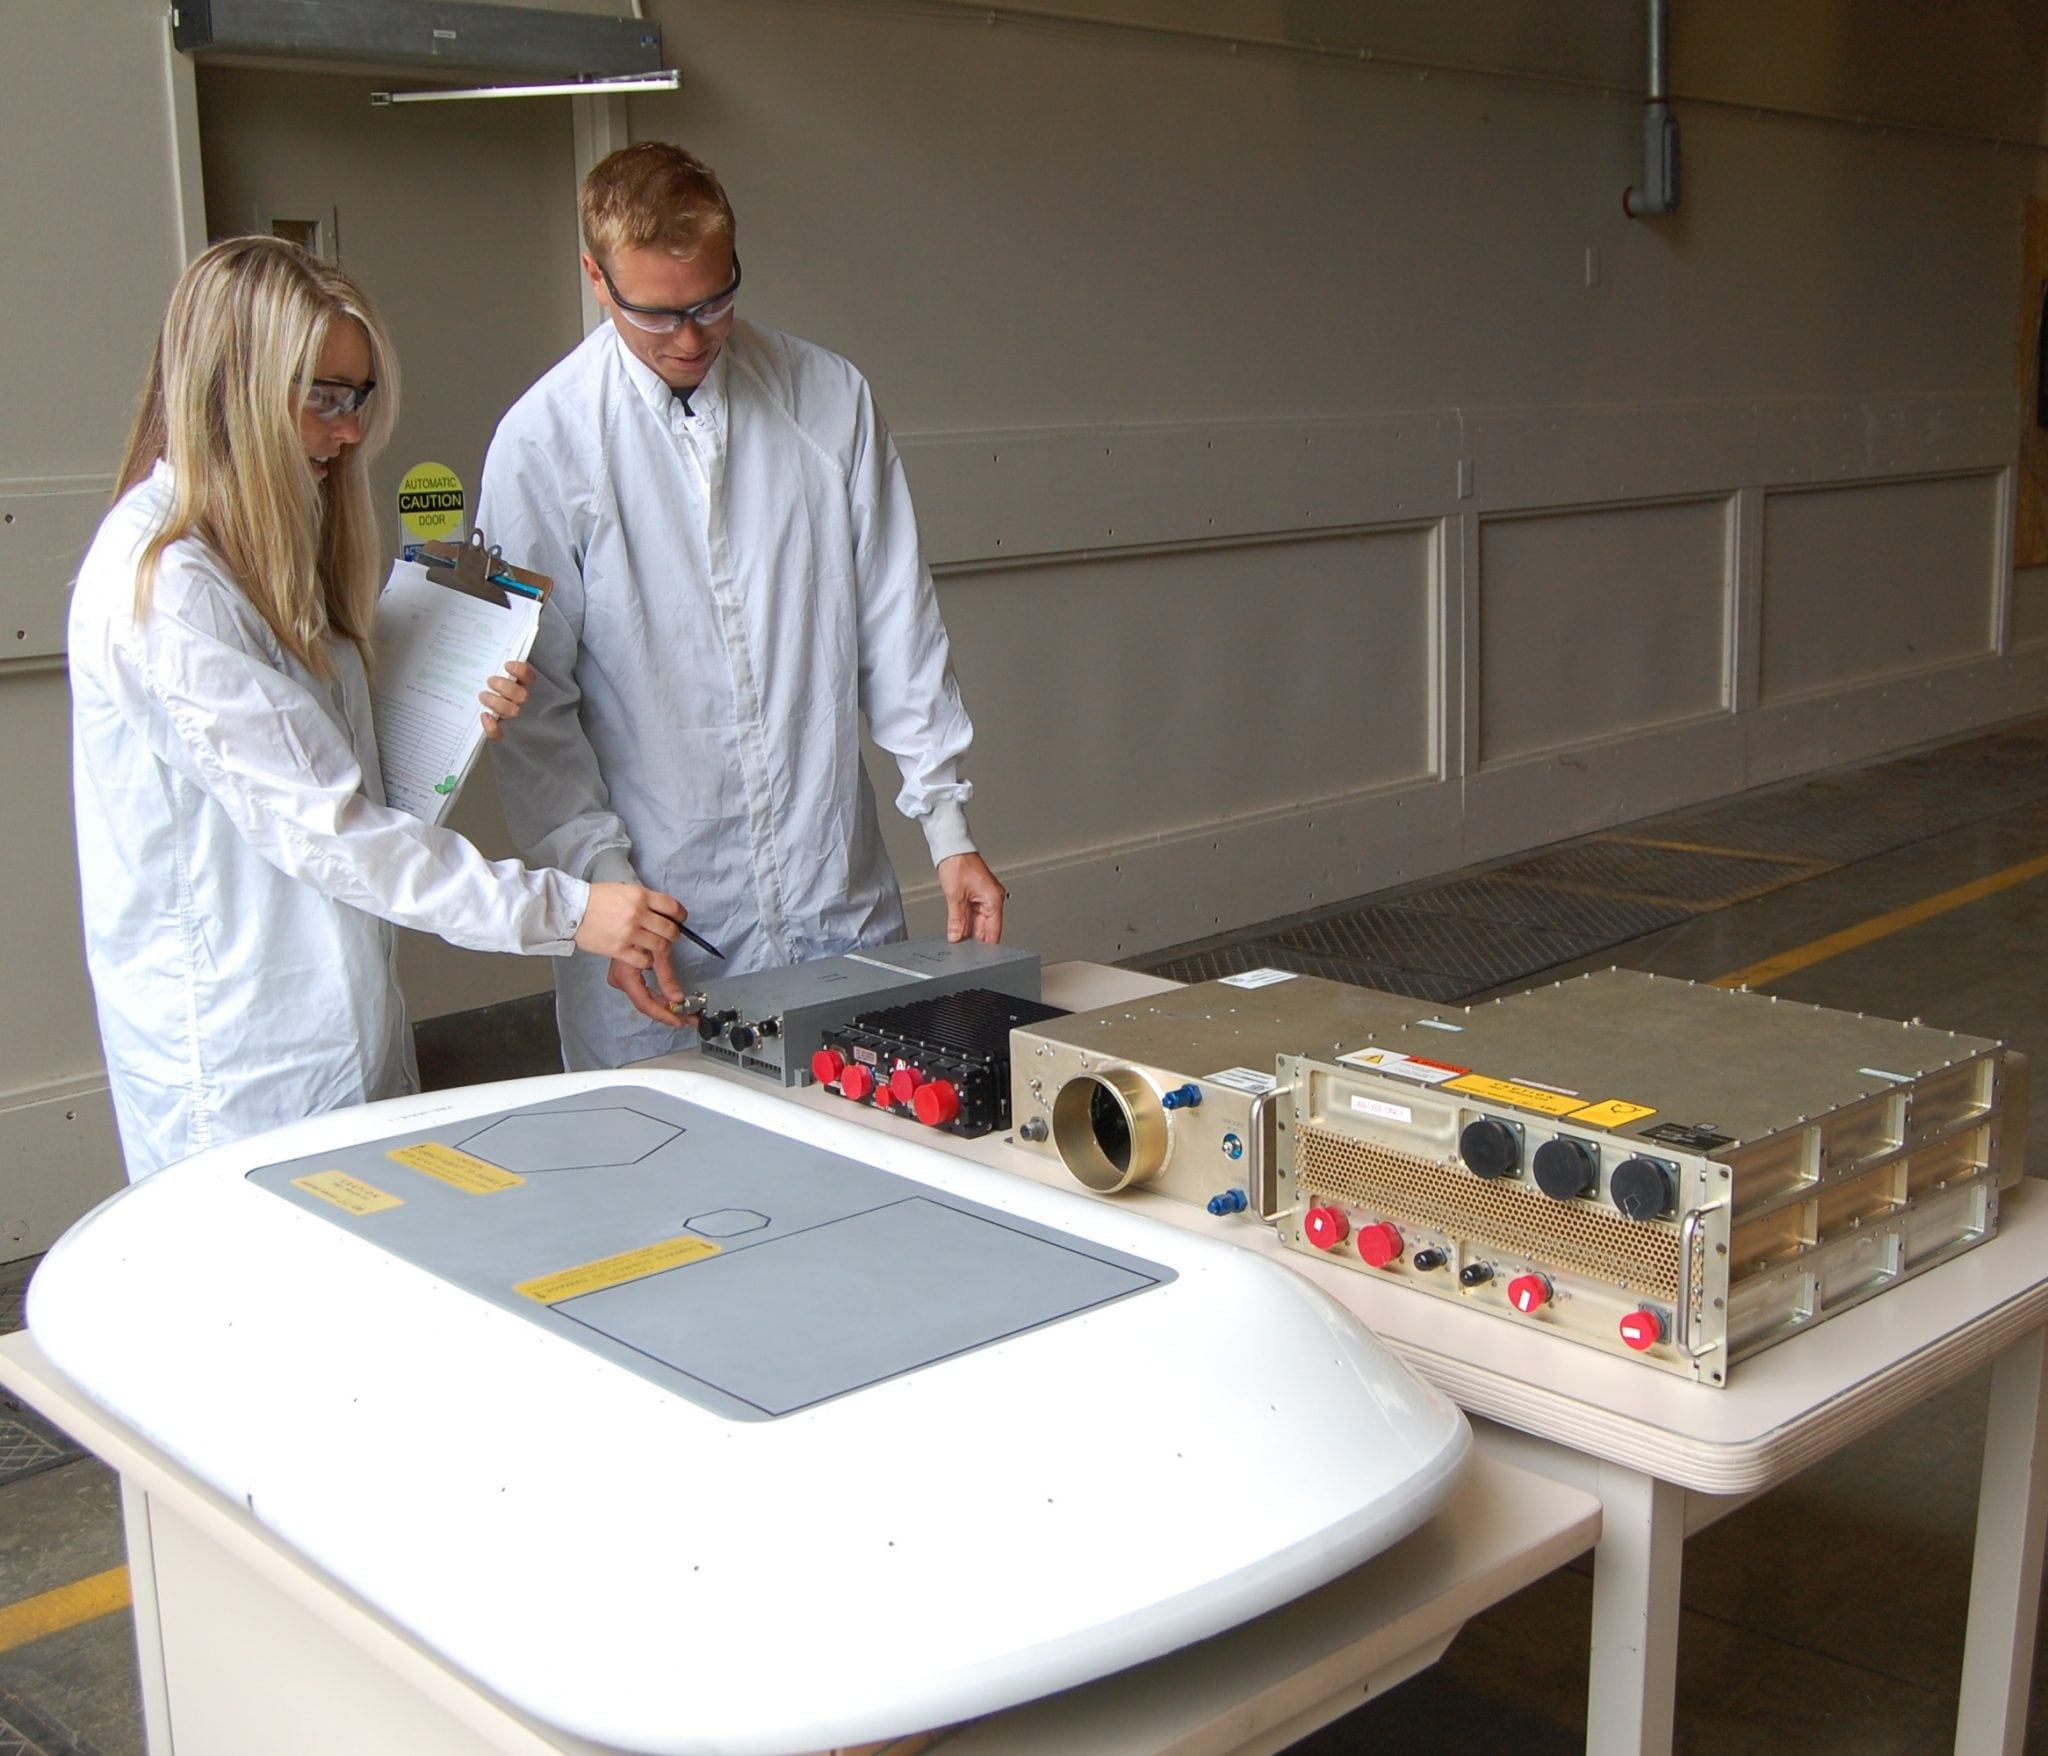 Boeing engineers Stephanie Mount and Chuck Renneberg examine the low-profile phased array antenna